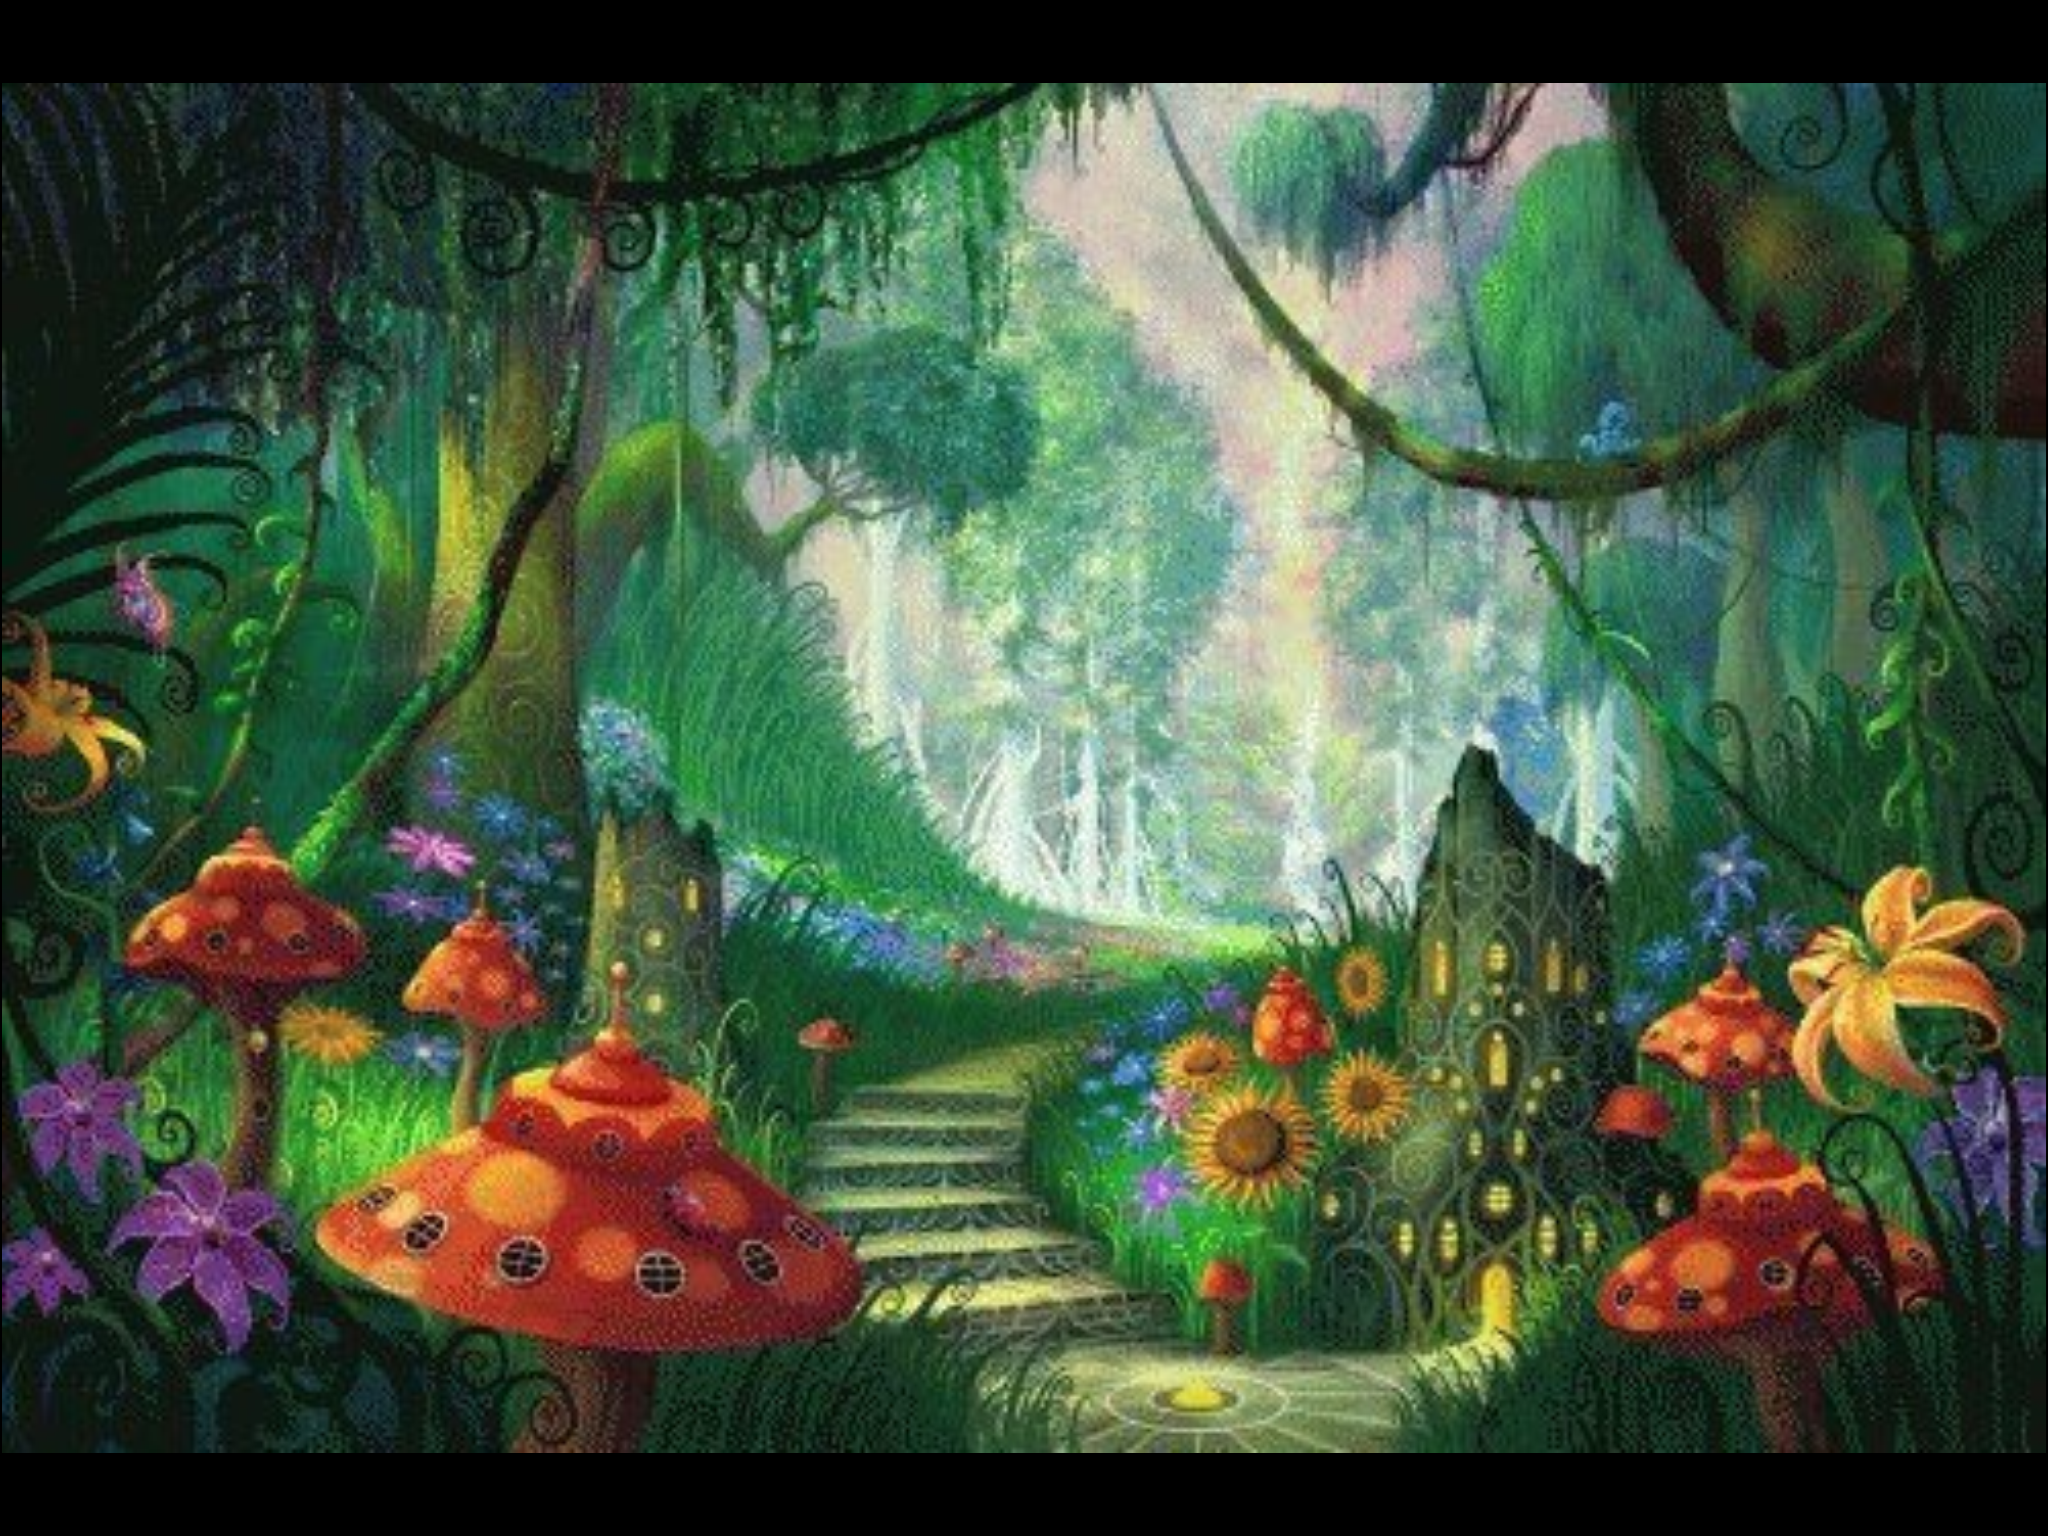 mushroom village | Fantasy, Fairies and Such | Pinterest | Fairy and ...